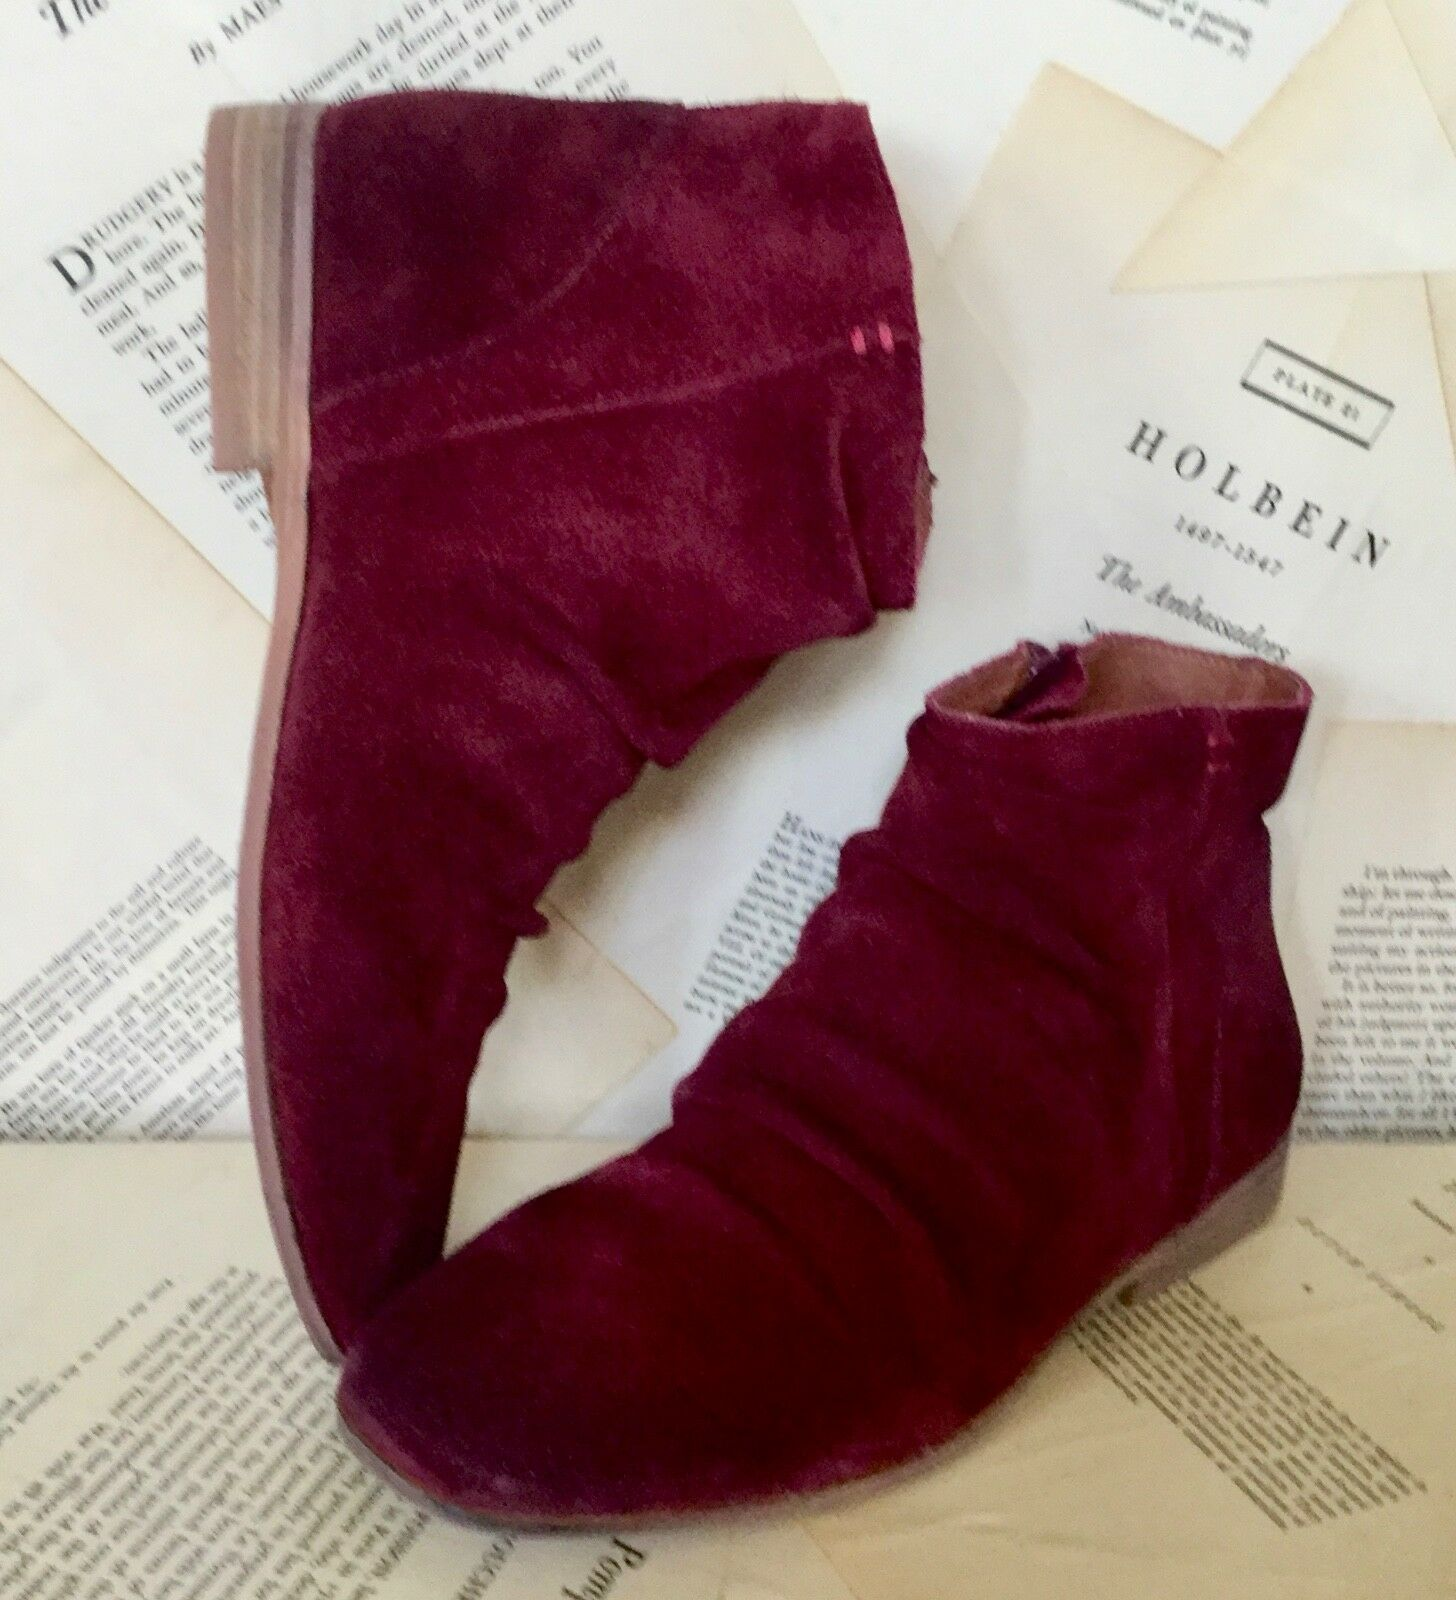 NEW Free People Jeffrey Campbell wine Booties Suede GatheROT Ankle Zipper Booties wine 6 9954ce